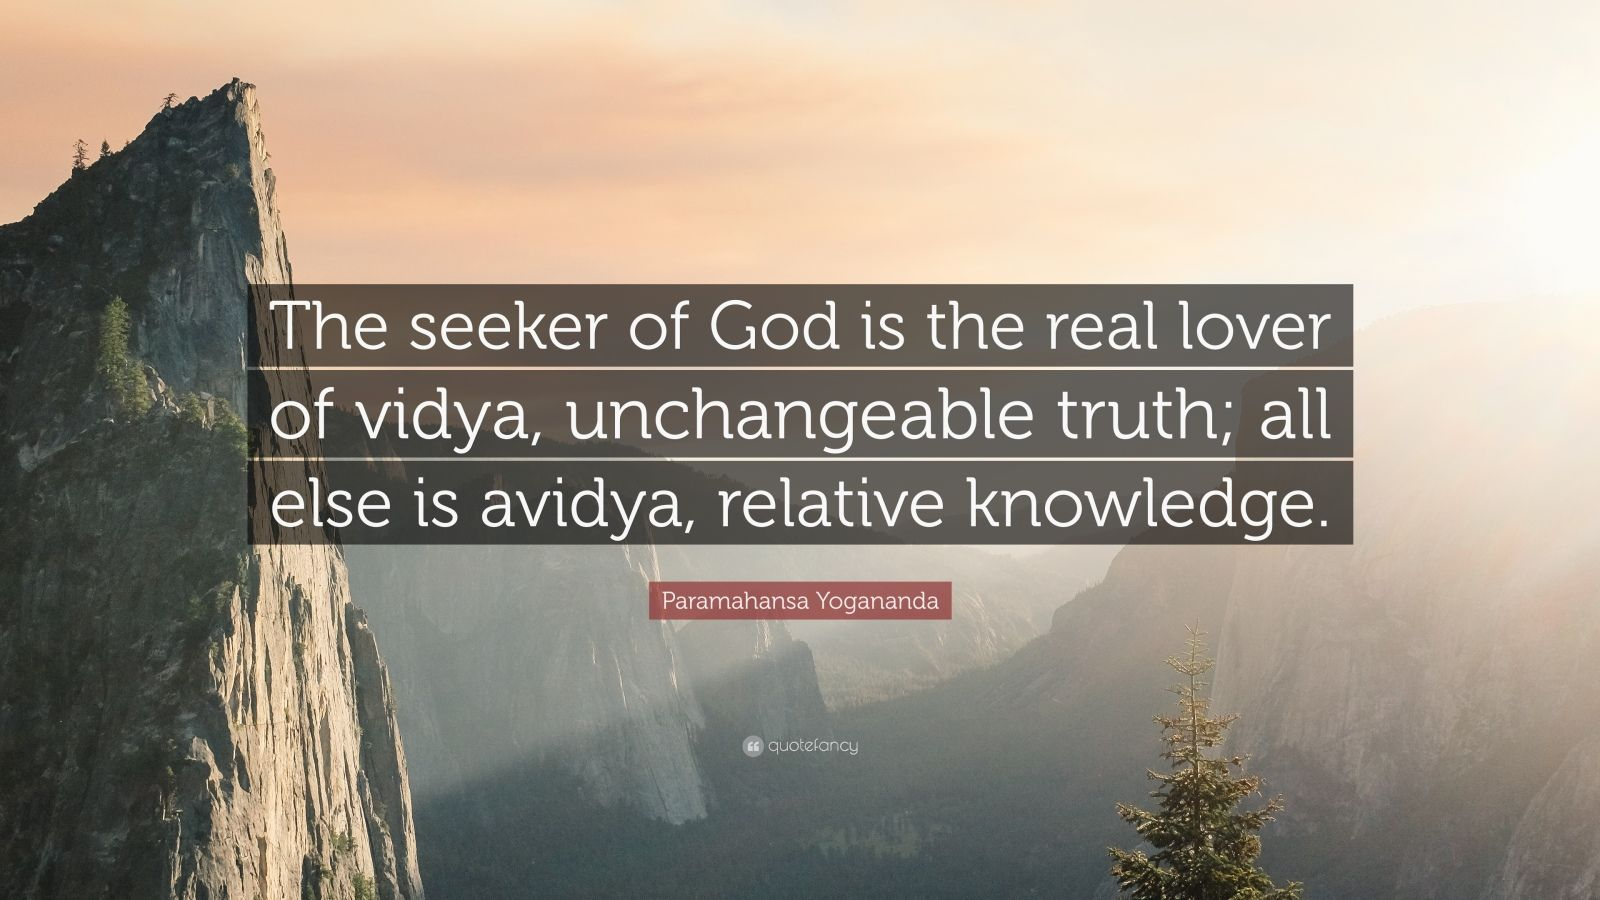 """Paramahansa Yogananda Quote: """"The seeker of God is the real lover of vidya, unchangeable truth; all else is avidya, relative knowledge."""""""